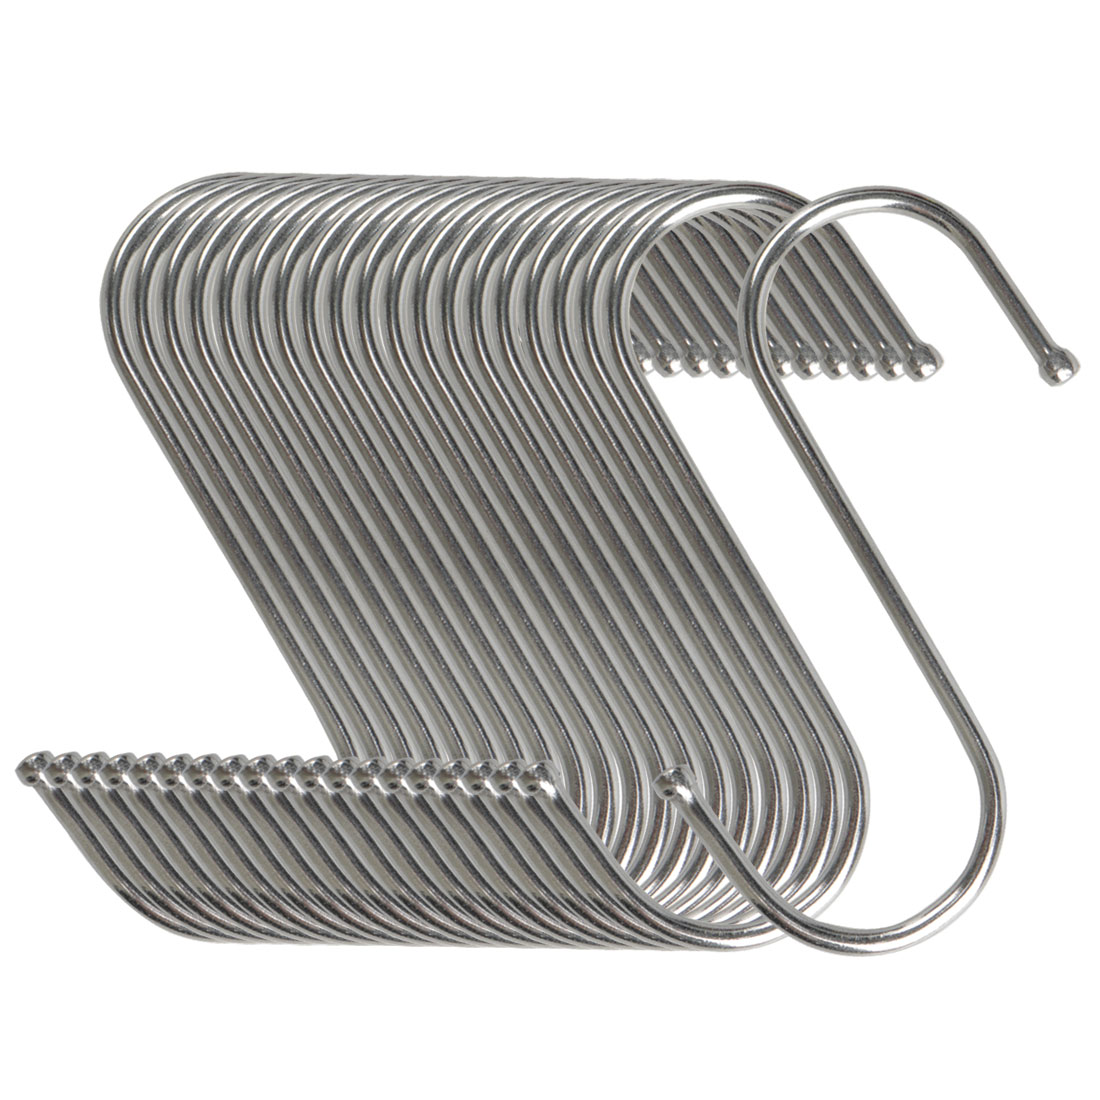 20pcs S Shaped Hook Stainless Steel for Kitchenware Pot Utensil Holder